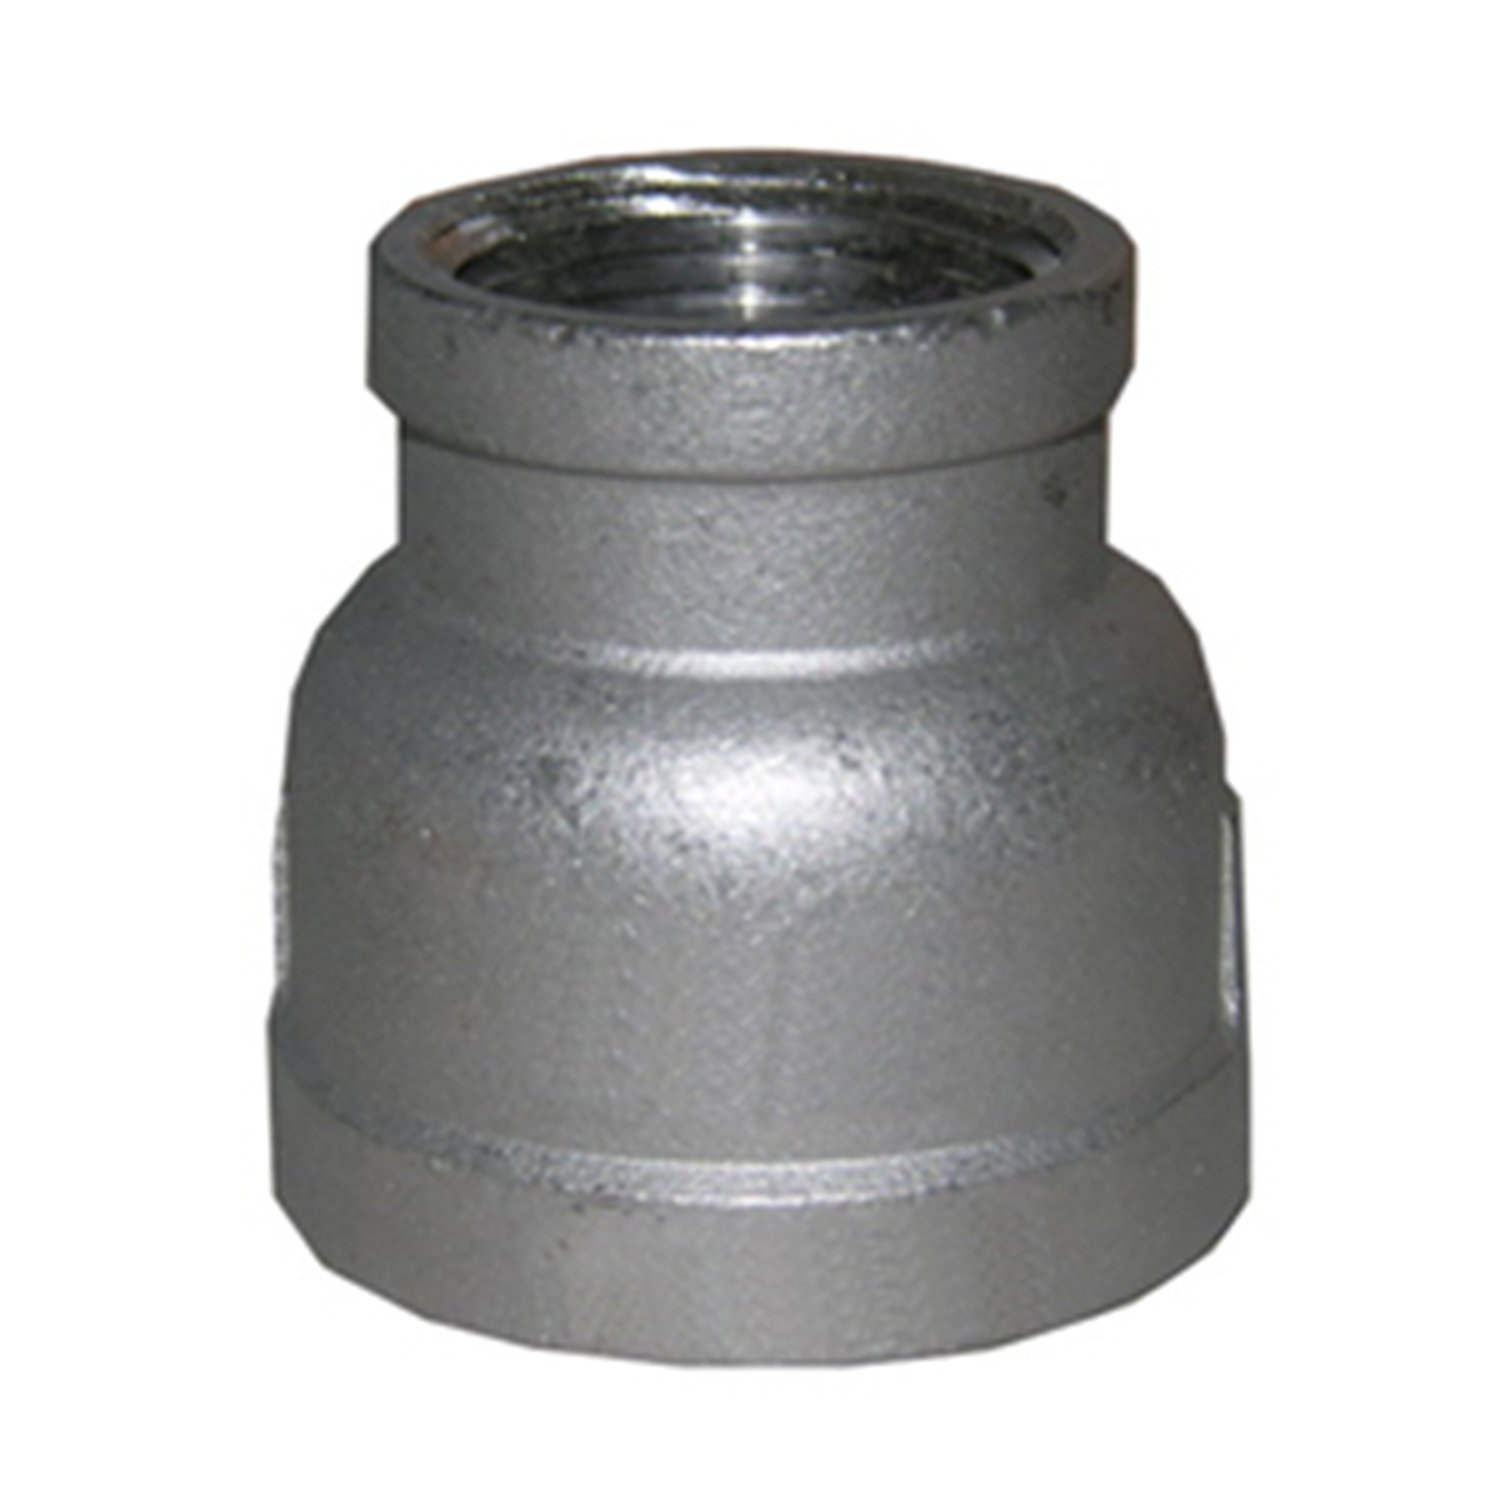 LASCO 32-2842 Stainless Steel Bell Reducer with 1 1/2-Inch Female Pipe Thread and 1-Inch Female Pipe Thread